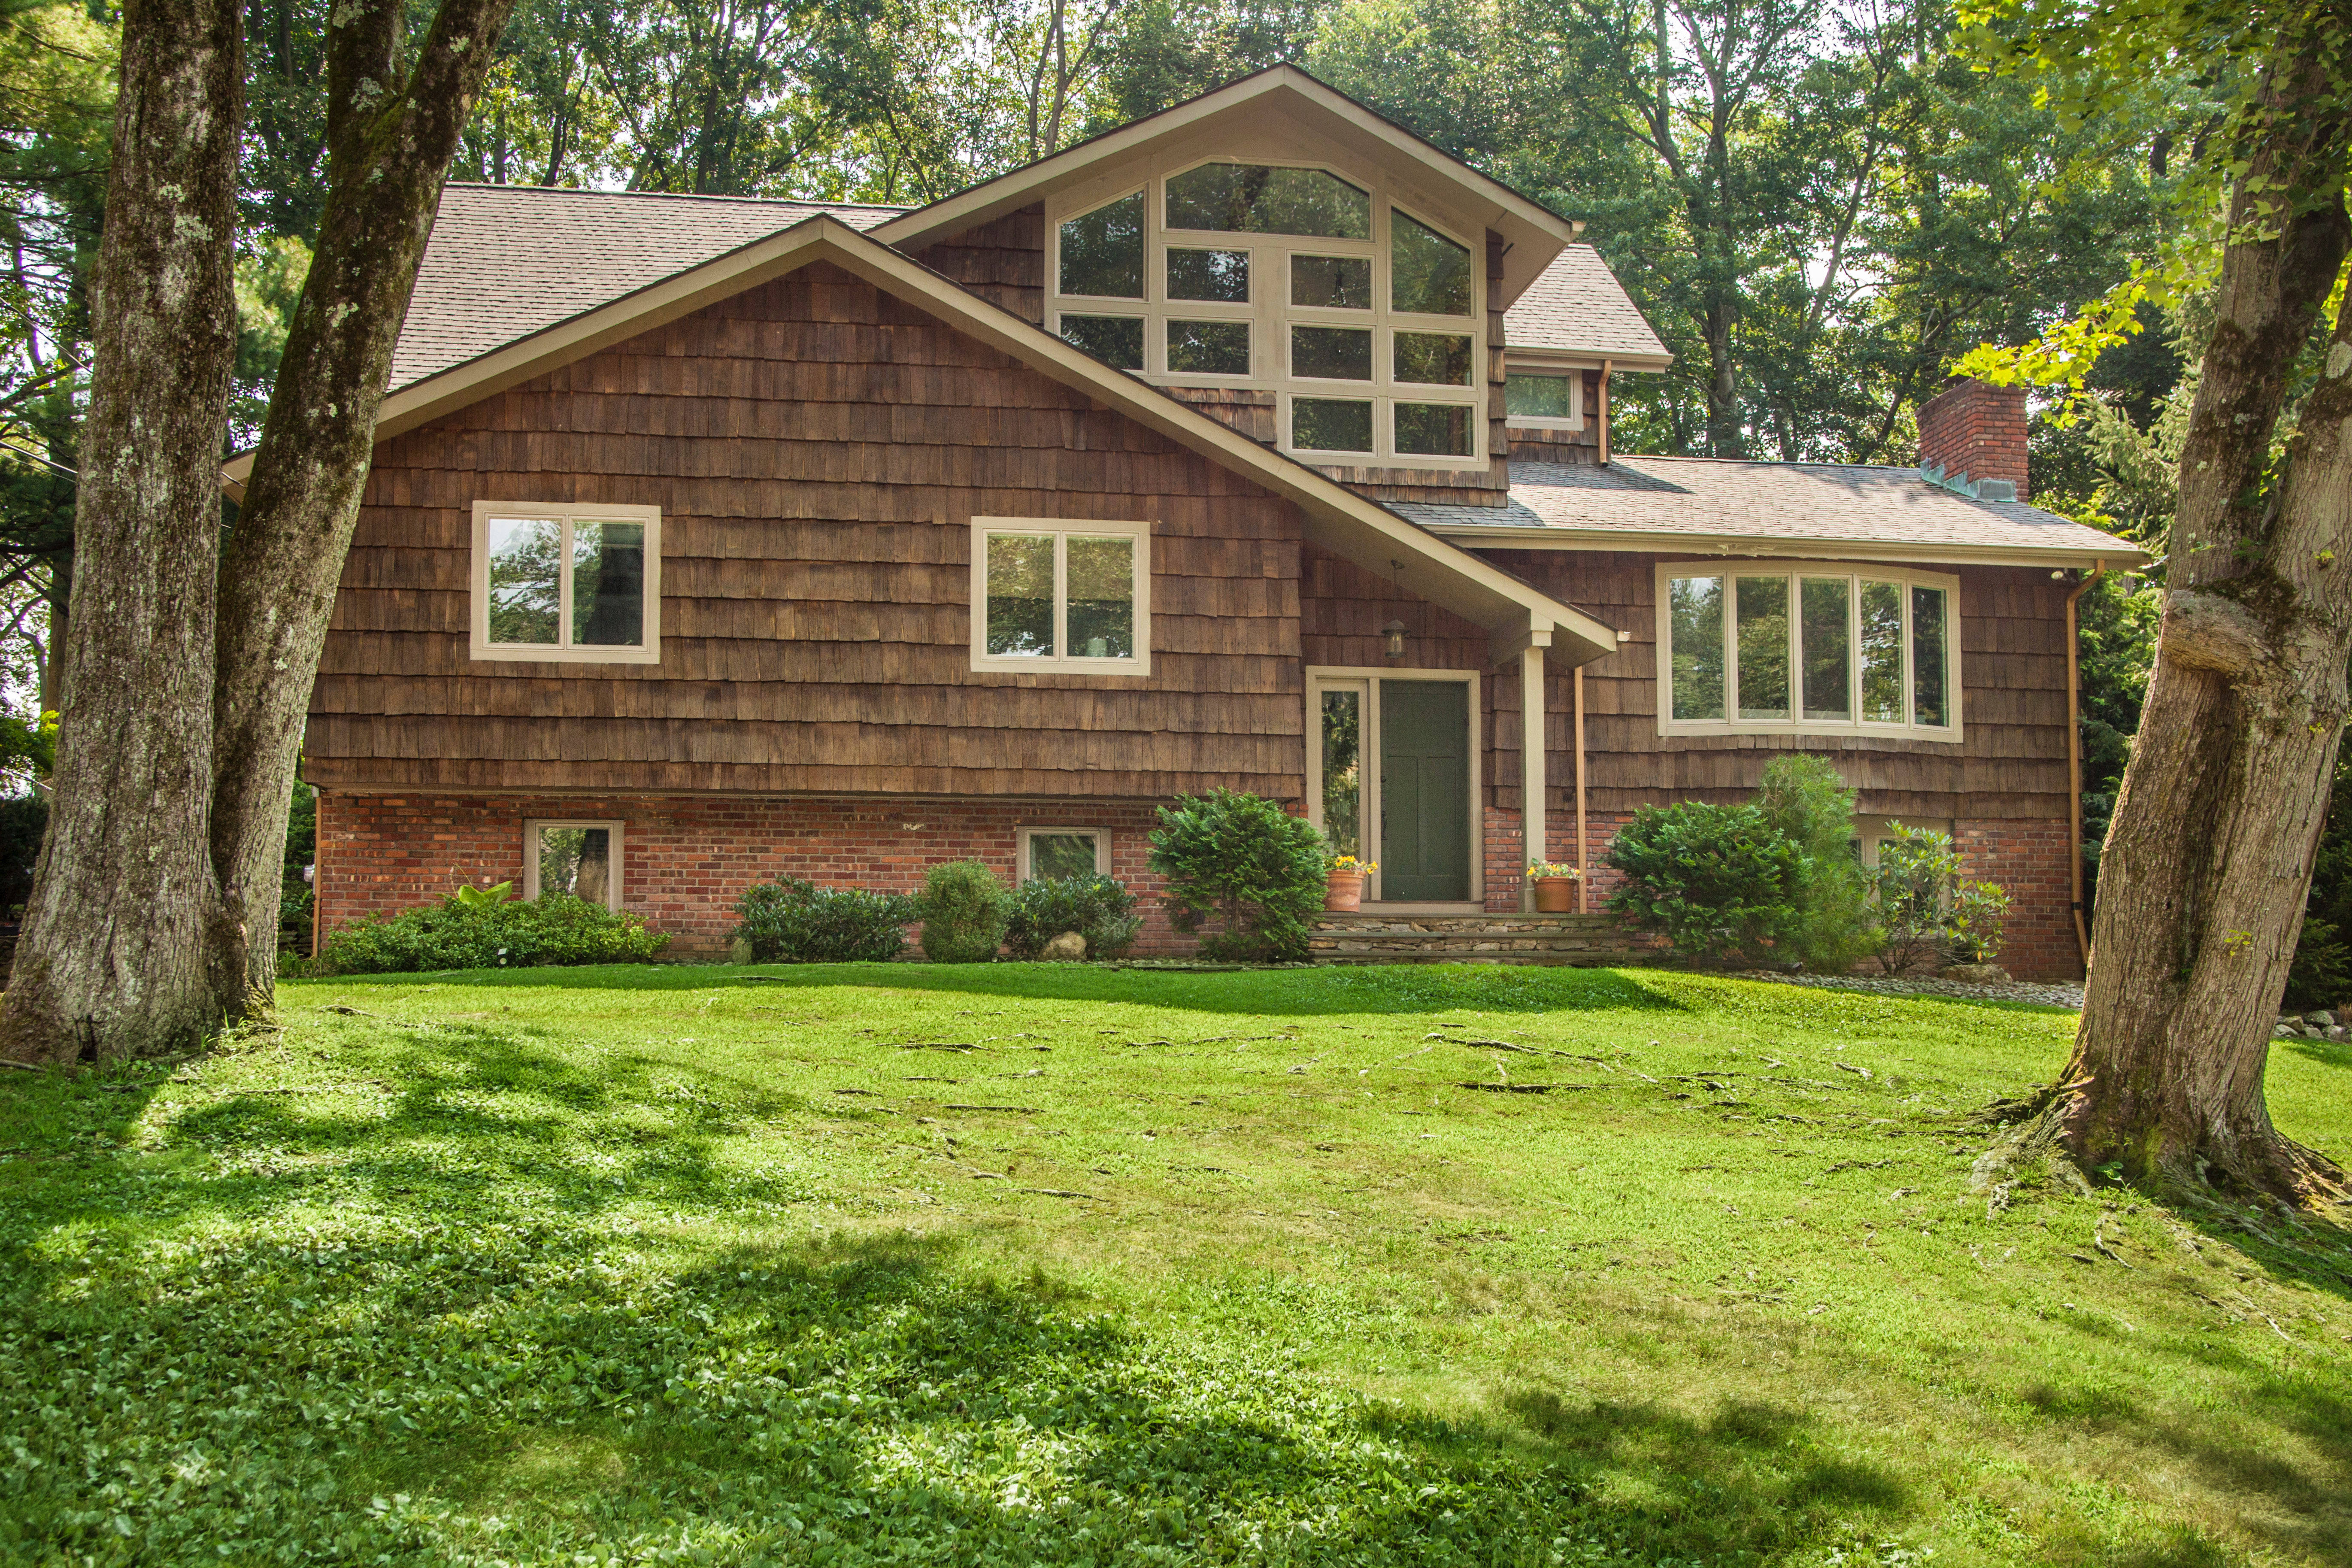 Single Family Home for Sale at 34 Meadowlark Road Rye Brook, New York, 10573 United States